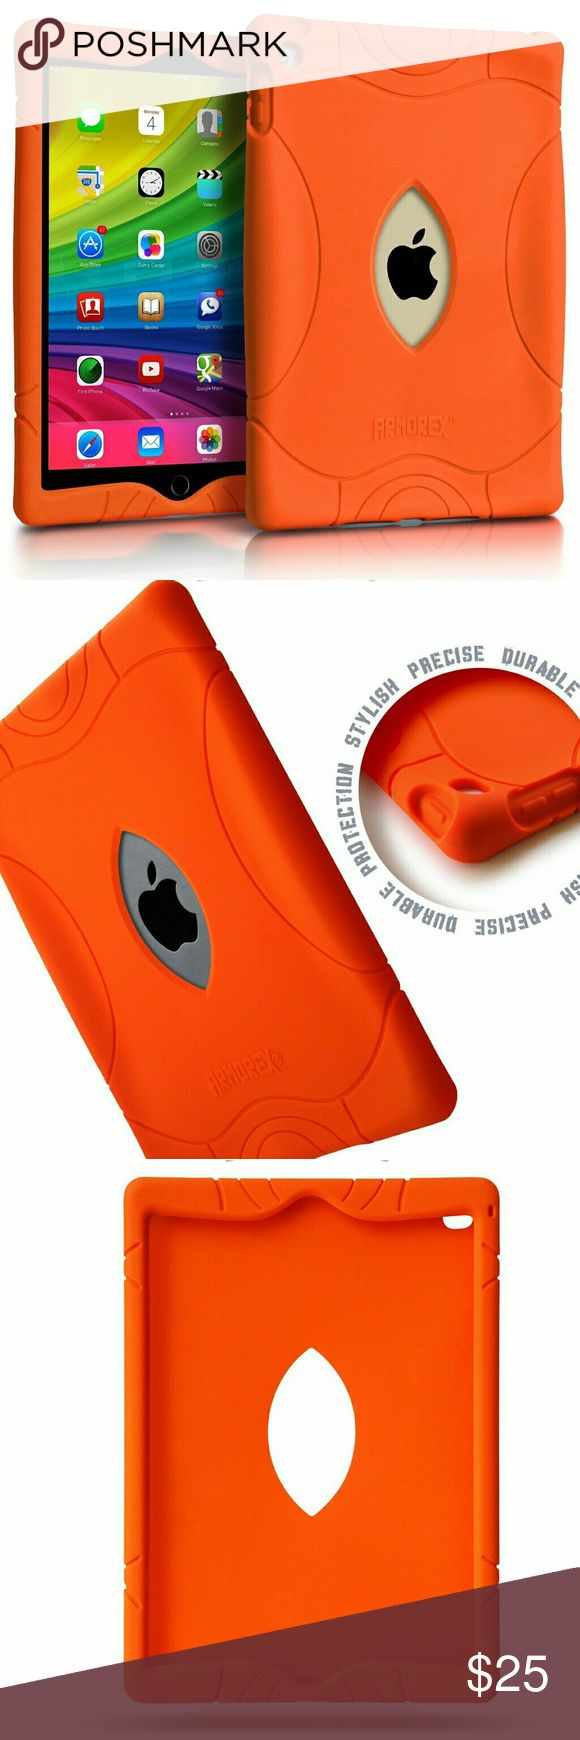 """iPad Air 2 Case 9.7"""" Solid Orange Silicone Case Case that not only looks great but also offers exceptional Drop & Shockproof protection. The wide cushions on each edge & sides provide your iPad Air a 6 mm lift above surface & keeps it safe from any angle and even when used by small kids.The 100% premium eco-friendly food-grade silicone case precisely covers your iPad.This material will not fade like regular plastic cases and will keep the special color and shape even after being exposed to…"""